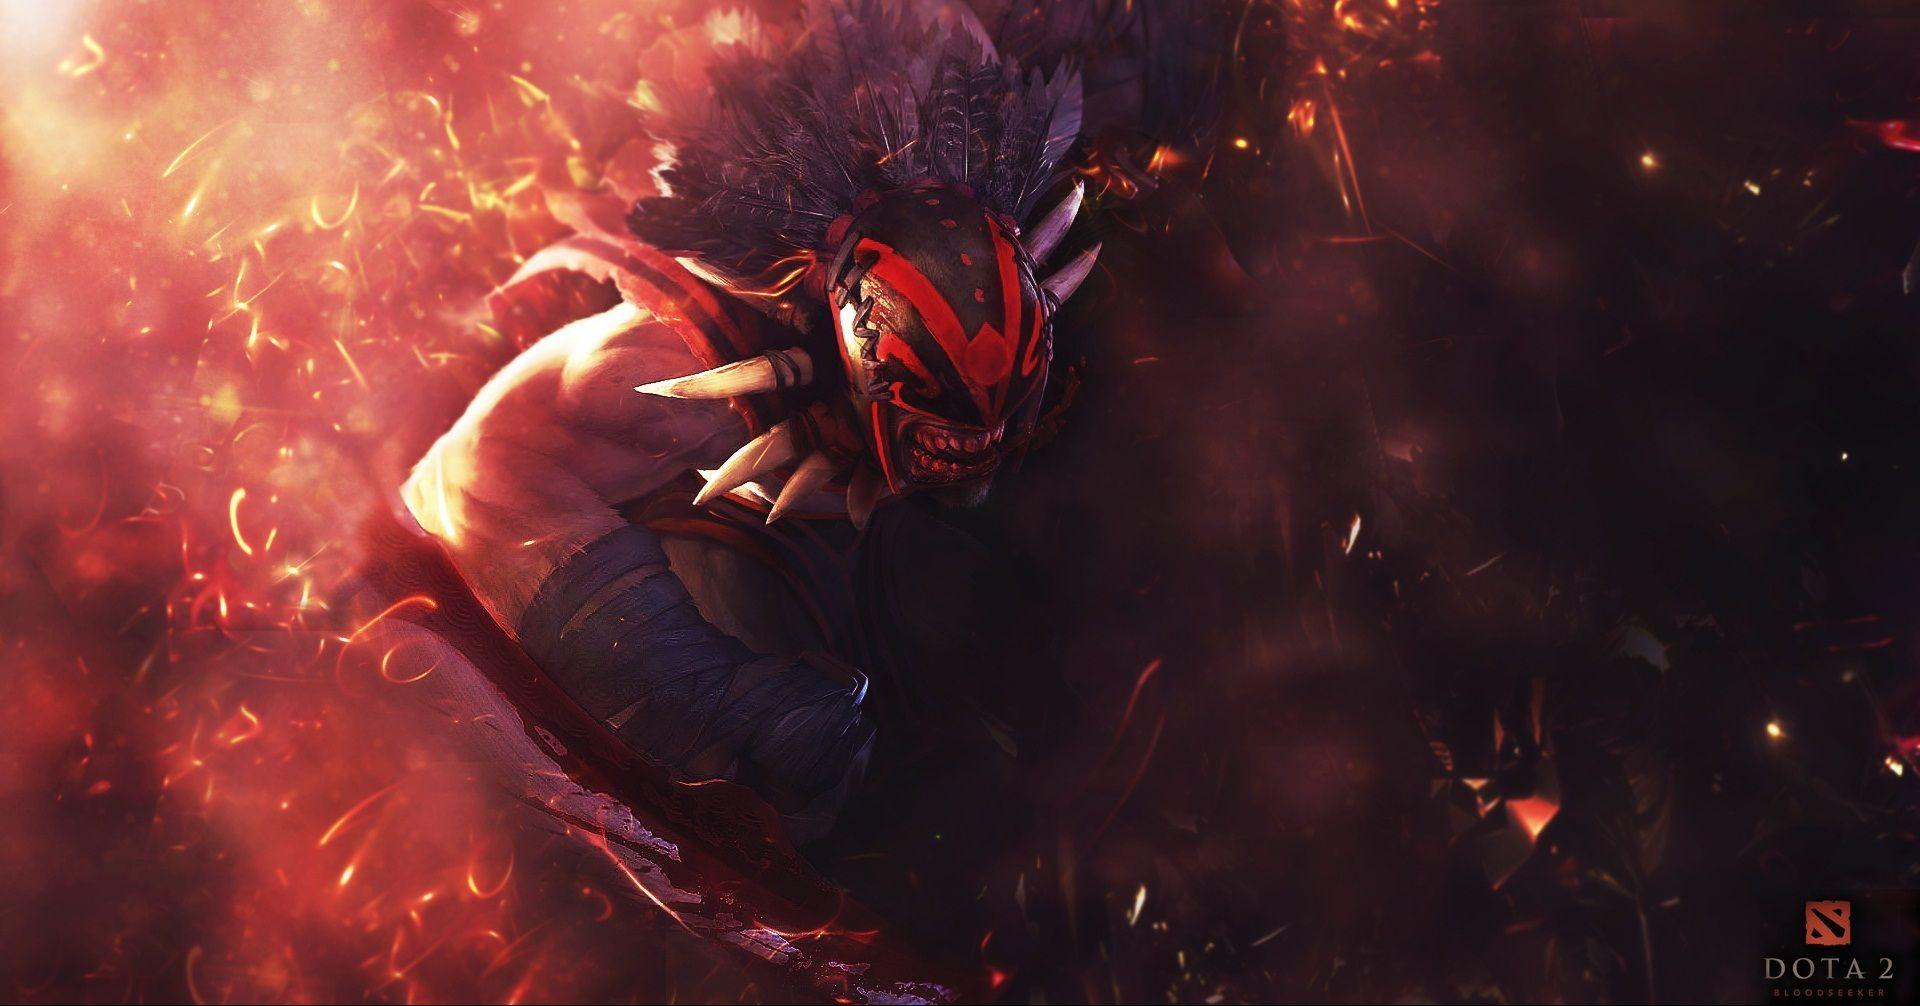 Dota 2 Wallpapers Top Free Dota 2 Backgrounds